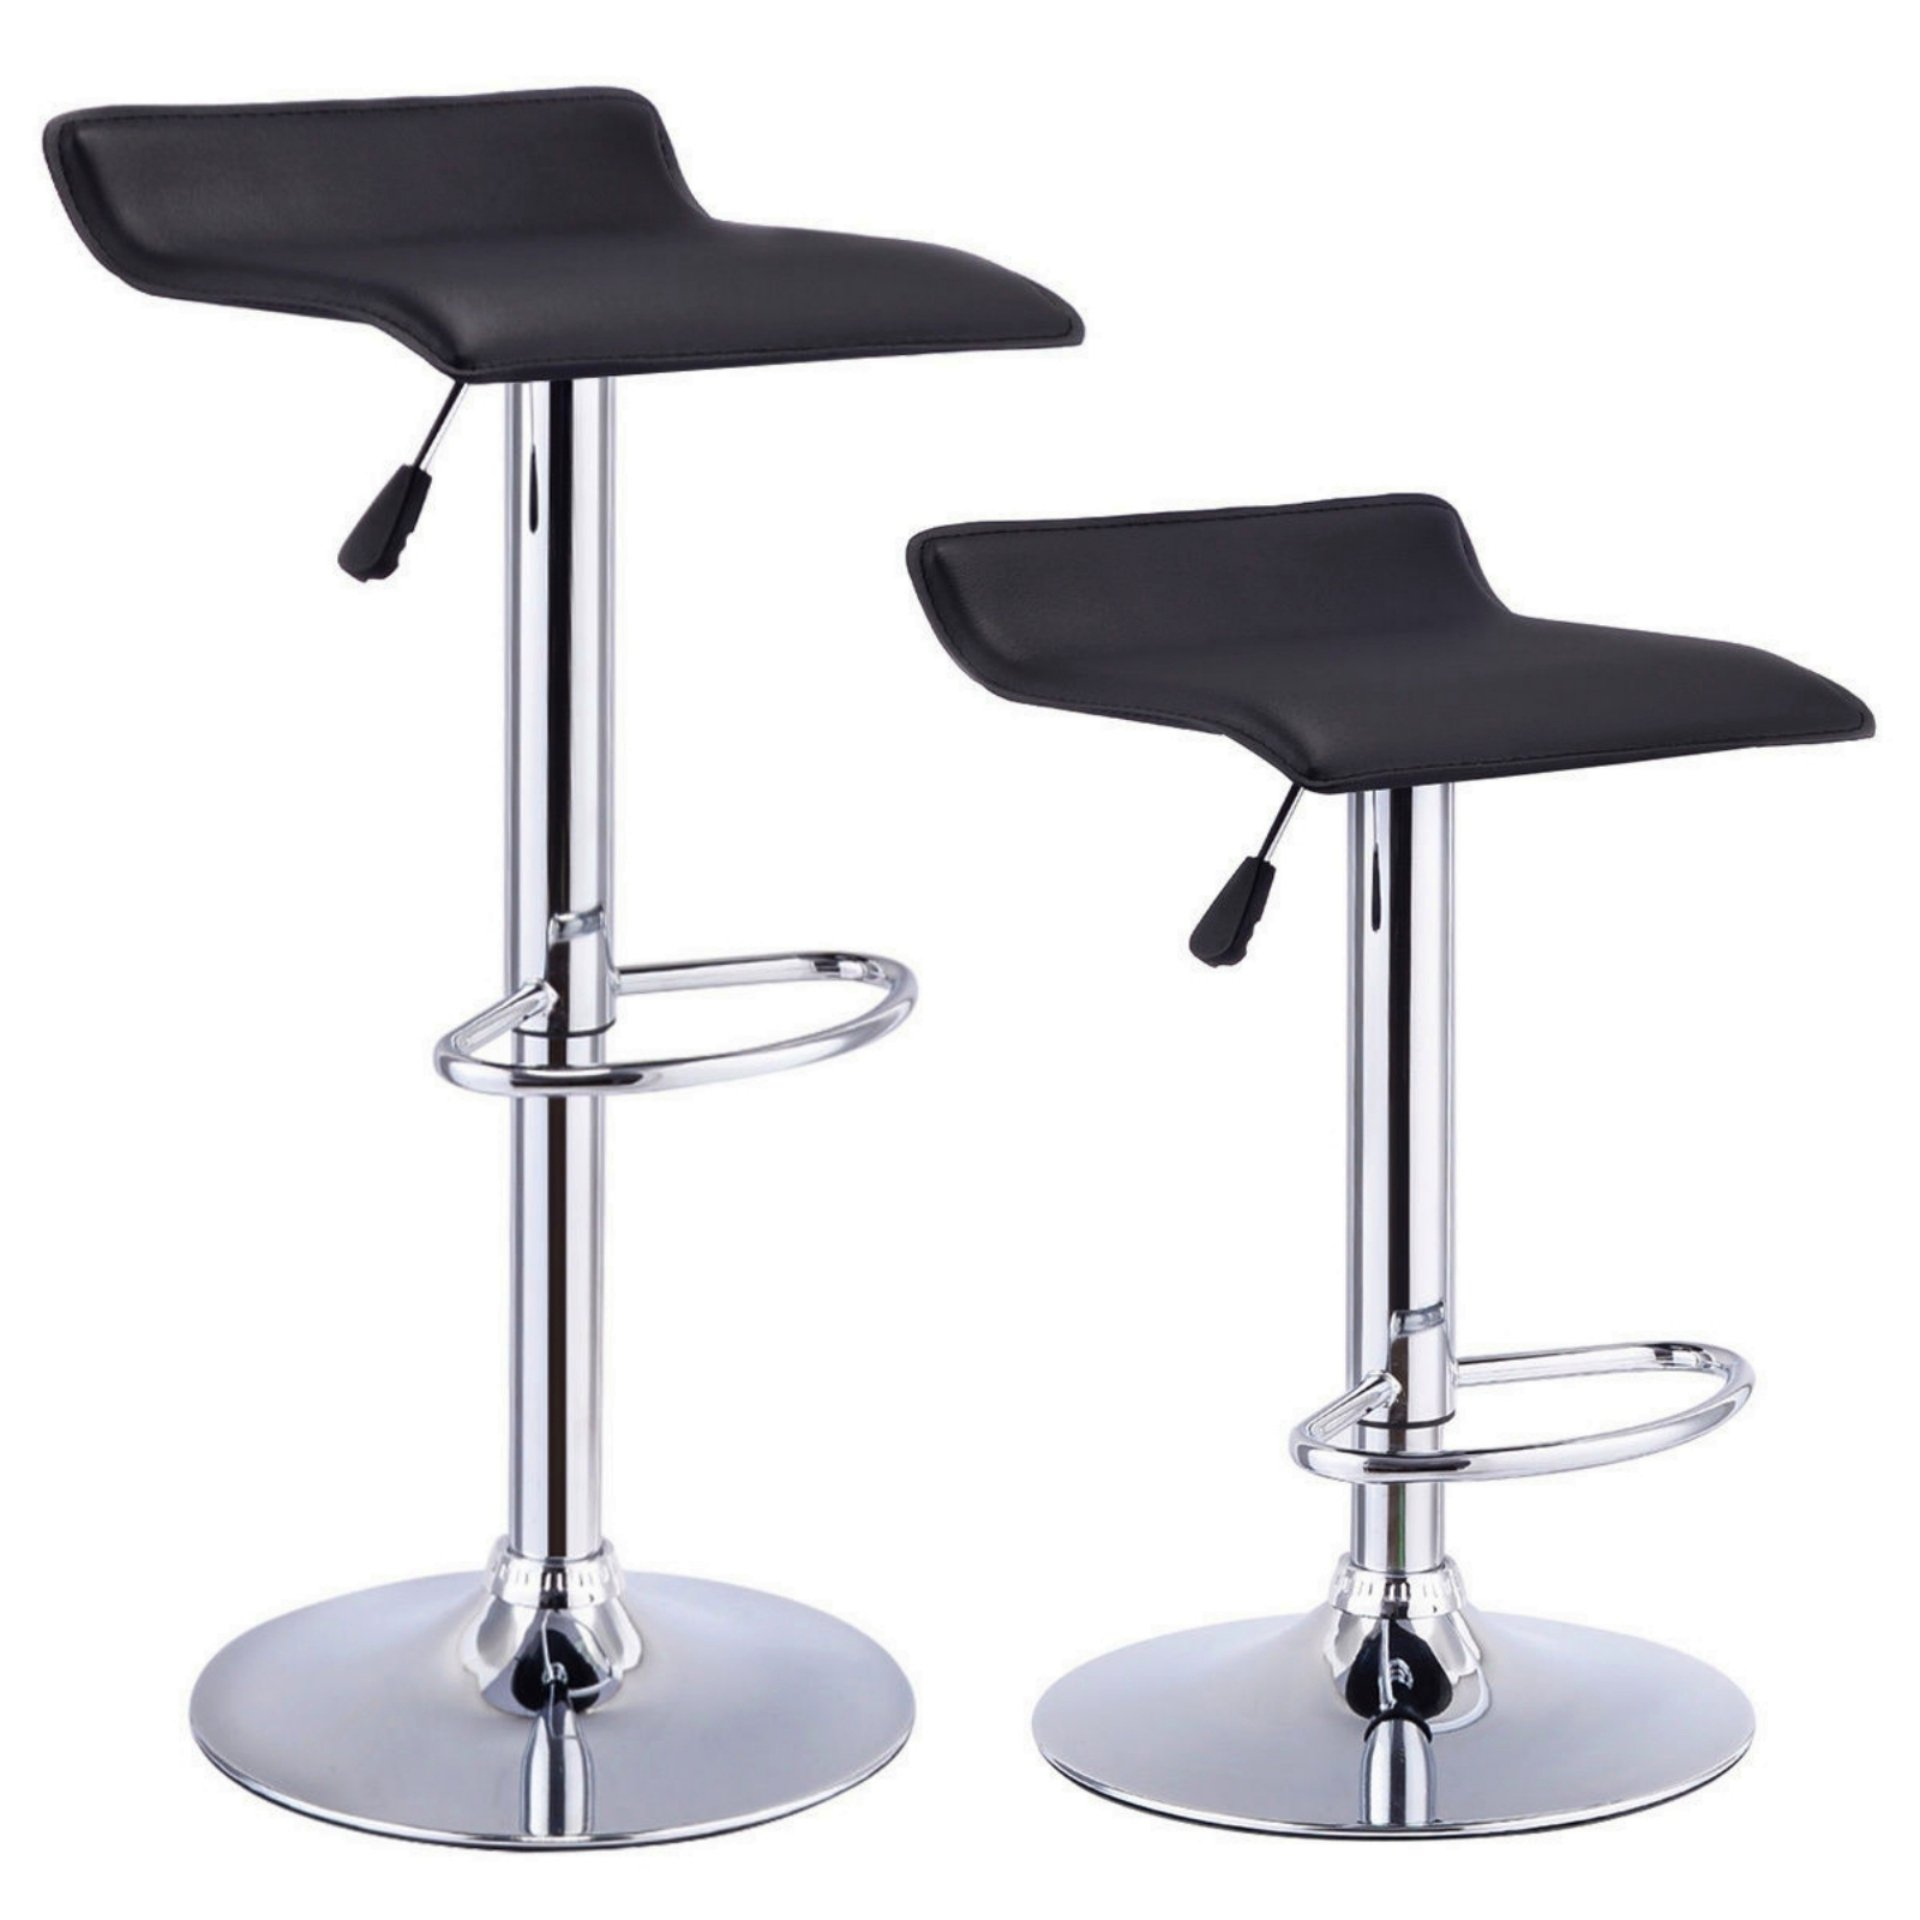 Set Of 2 Swivel Bar Stools Adjustable Waterproof Anti-aging PU Leather Backless Dining Bar Chair Square Black #711